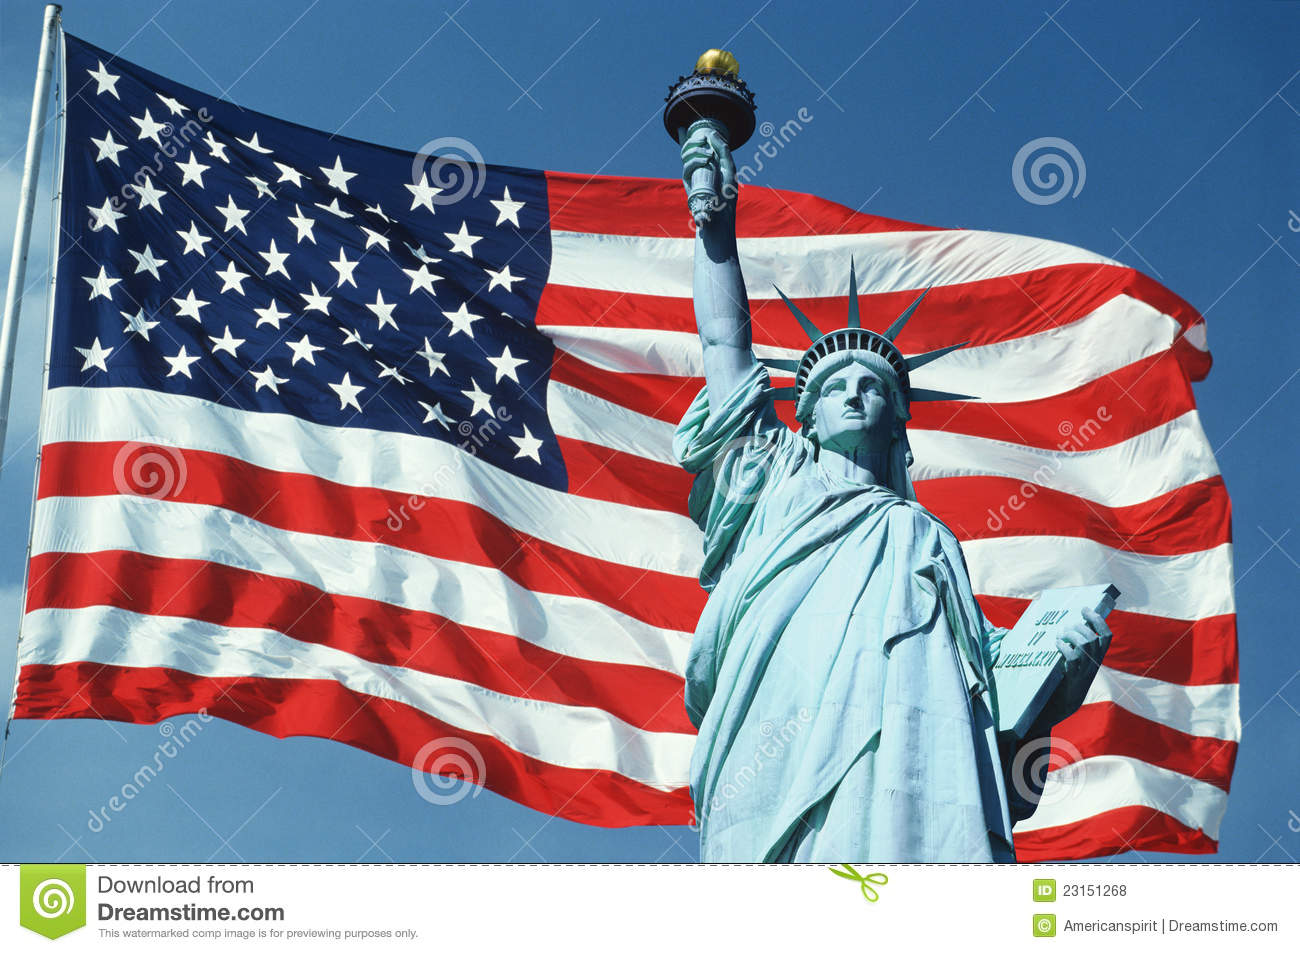 Collage of Statue of Liberty over American Flag